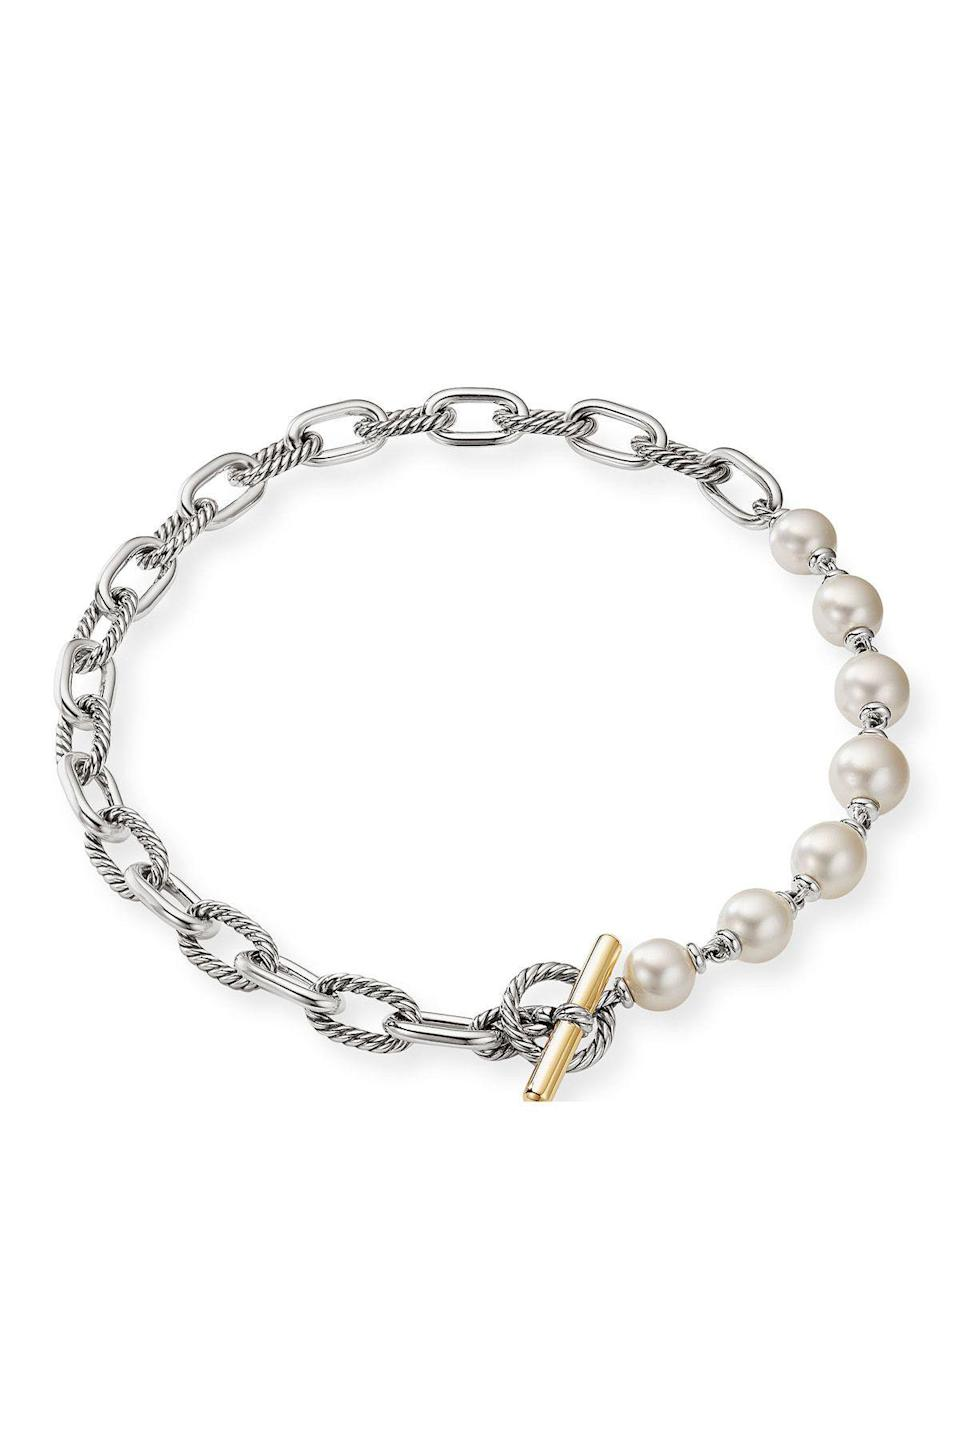 """<p><strong>David Yurman</strong></p><p>neimanmarcus.com</p><p><strong>$2400.00</strong></p><p><a href=""""https://go.redirectingat.com?id=74968X1596630&url=https%3A%2F%2Fwww.neimanmarcus.com%2Fp%2Fdavid-yurman-madison-12-5-13mm-pearl-necklace-18-l-prod237470348%3FchildItemId%3DNMY5F57_%26navpath%3Dcat000000_cat4870731_cat60830812_cat81430748%26page%3D0%26position%3D35&sref=https%3A%2F%2Fwww.townandcountrymag.com%2Fstyle%2Fjewelry-and-watches%2Fg36793443%2Fbest-mens-pearl-jewelry%2F"""" rel=""""nofollow noopener"""" target=""""_blank"""" data-ylk=""""slk:Shop Now"""" class=""""link rapid-noclick-resp"""">Shop Now</a></p><p><a href=""""https://www.townandcountrymag.com/style/jewelry-and-watches/a35767299/david-yurman-elements-collection/"""" rel=""""nofollow noopener"""" target=""""_blank"""" data-ylk=""""slk:David Yurman's"""" class=""""link rapid-noclick-resp"""">David Yurman's</a> industrial looking pieces make them a mainstay for those who prefer a masculine look, but add a few pearls and things start to get interesting. </p>"""